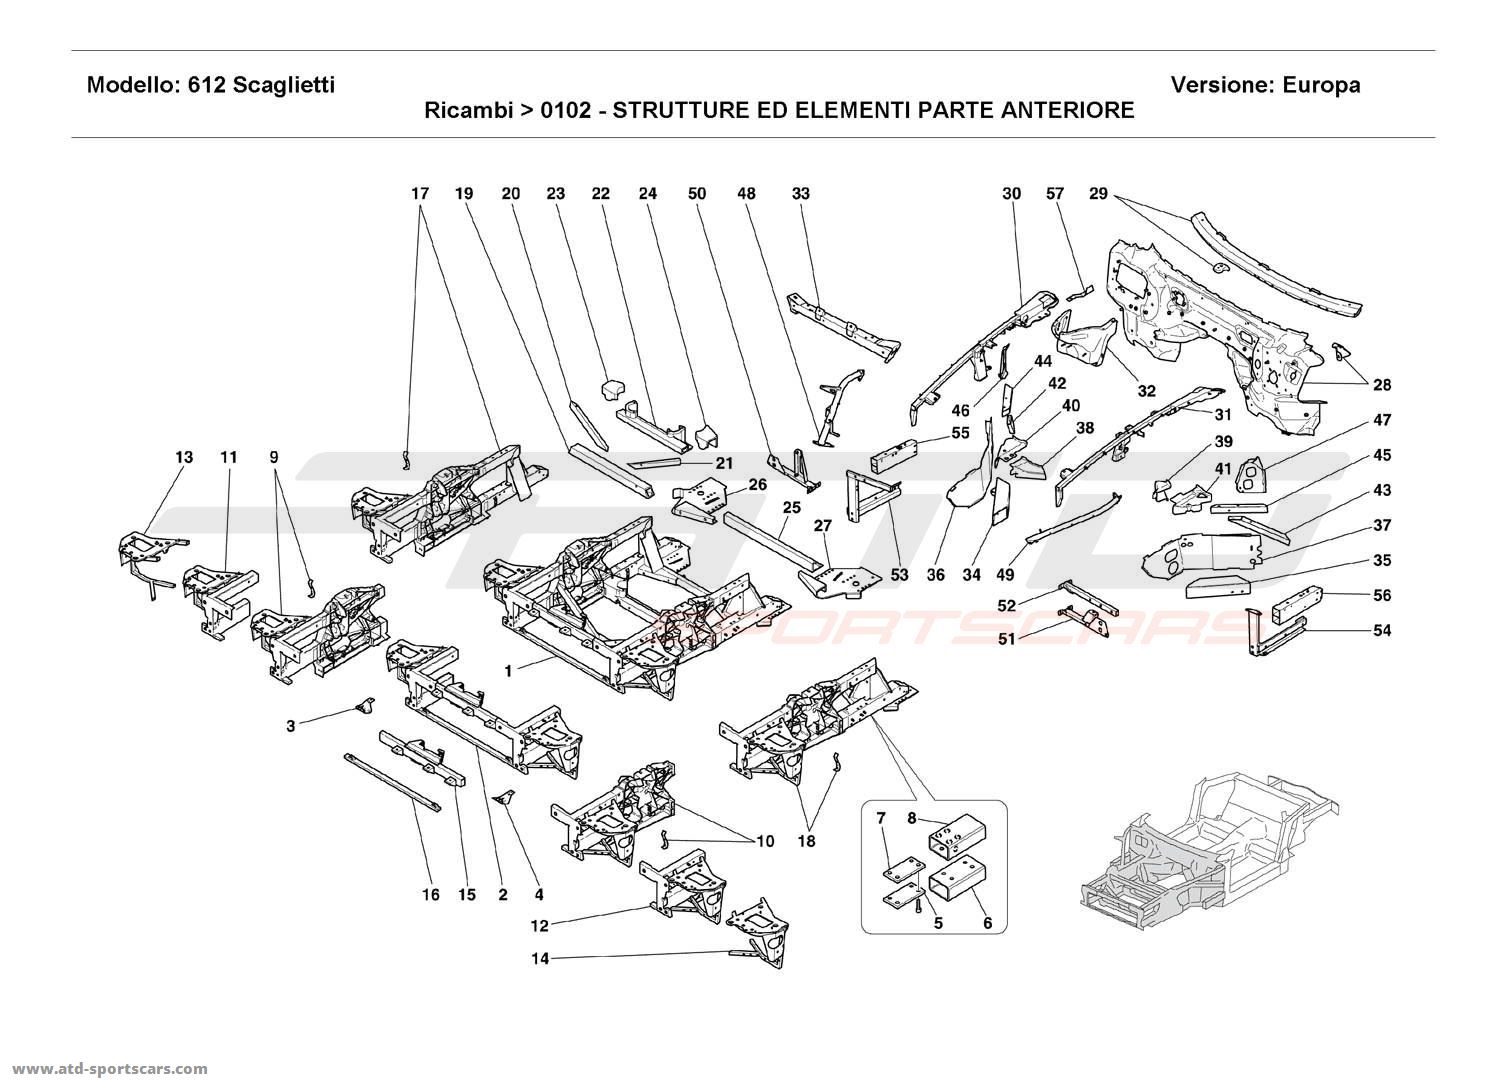 Ferrari 612 Scaglietti FRONT STRUCTURES AND COMPONENTS